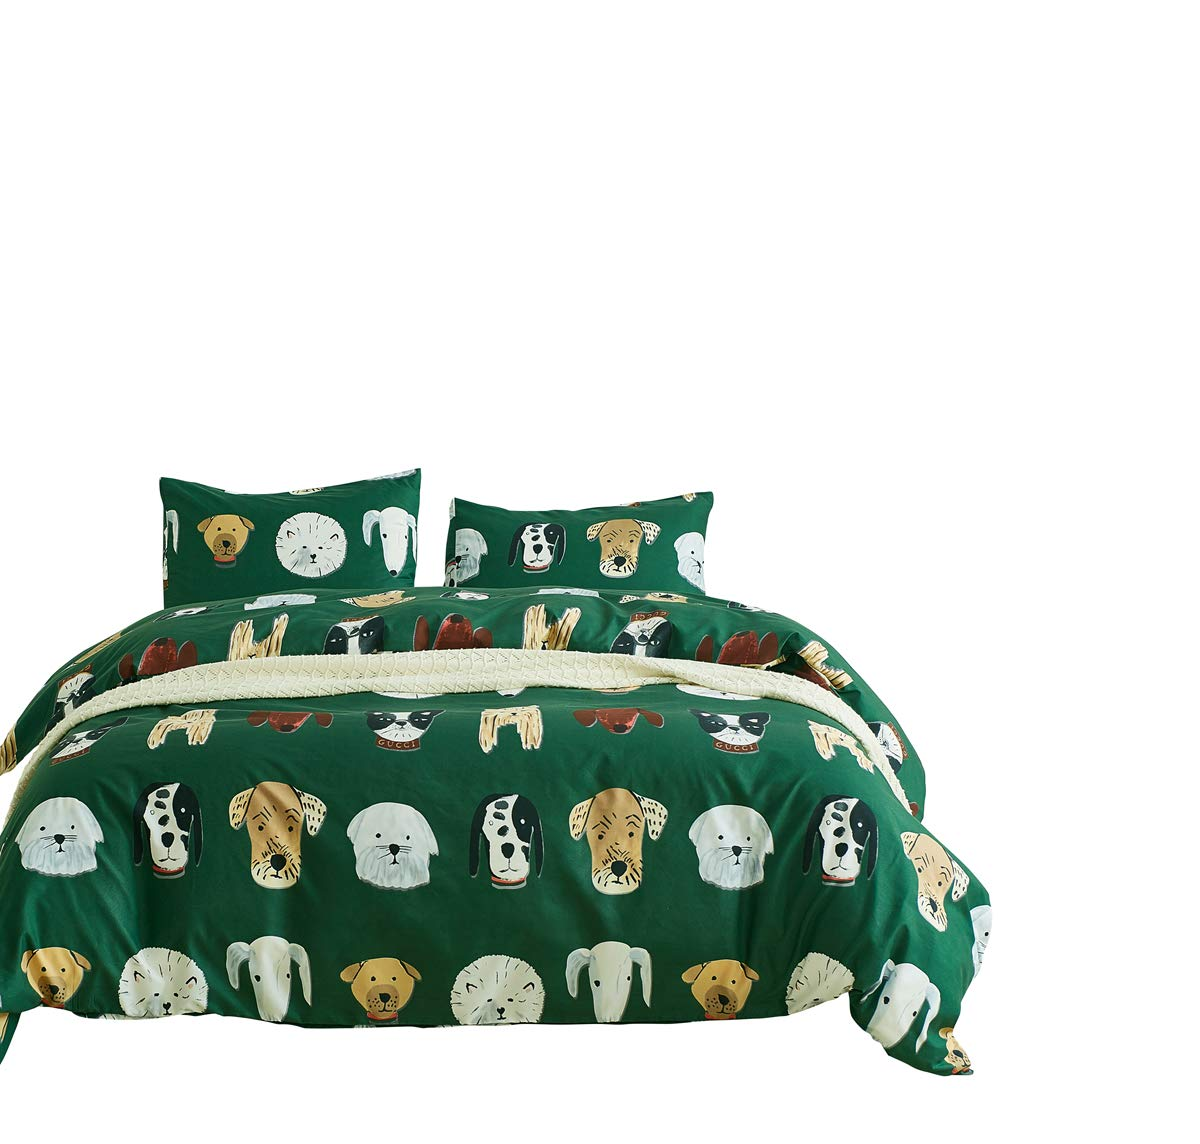 RheaChoice Green Dogs Cats Funny Design Printed Duvet Cover Set,3 Pieces Stylish Brushed Microfiber Bedding Set Zipper Corner Ties - King Size (104''x90'')